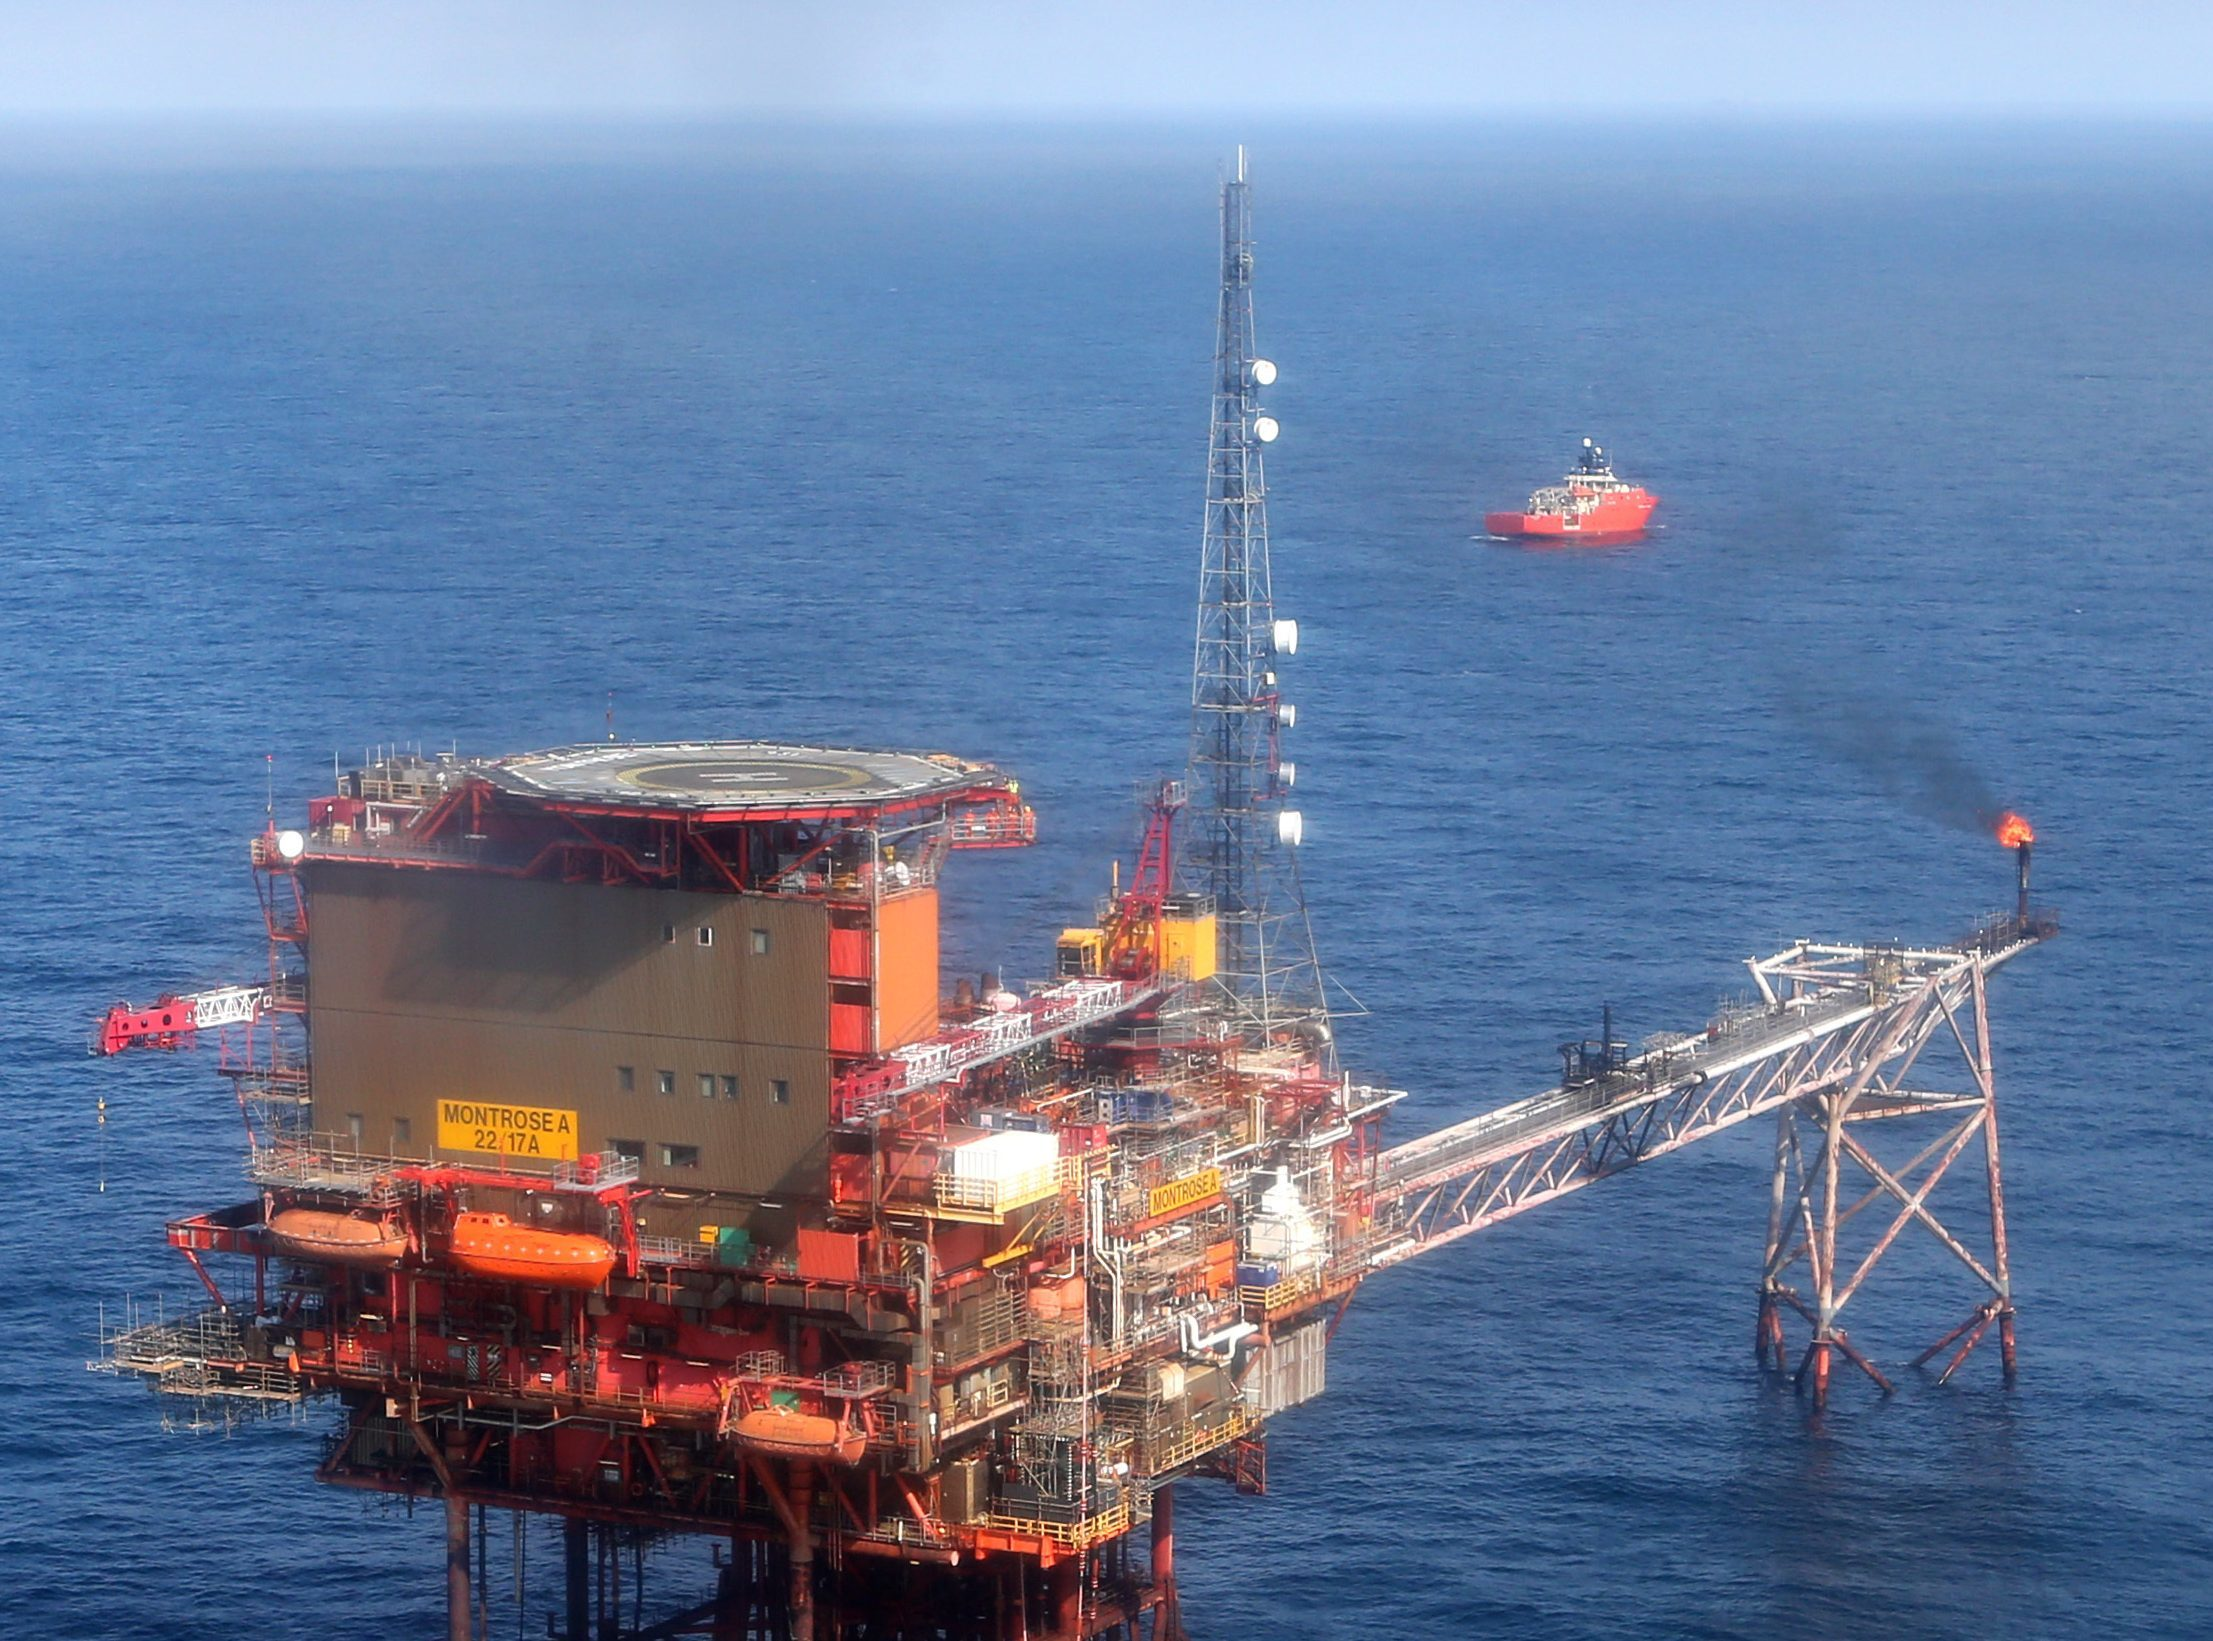 North Sea oil and gas contractors Archives - Sunday Post